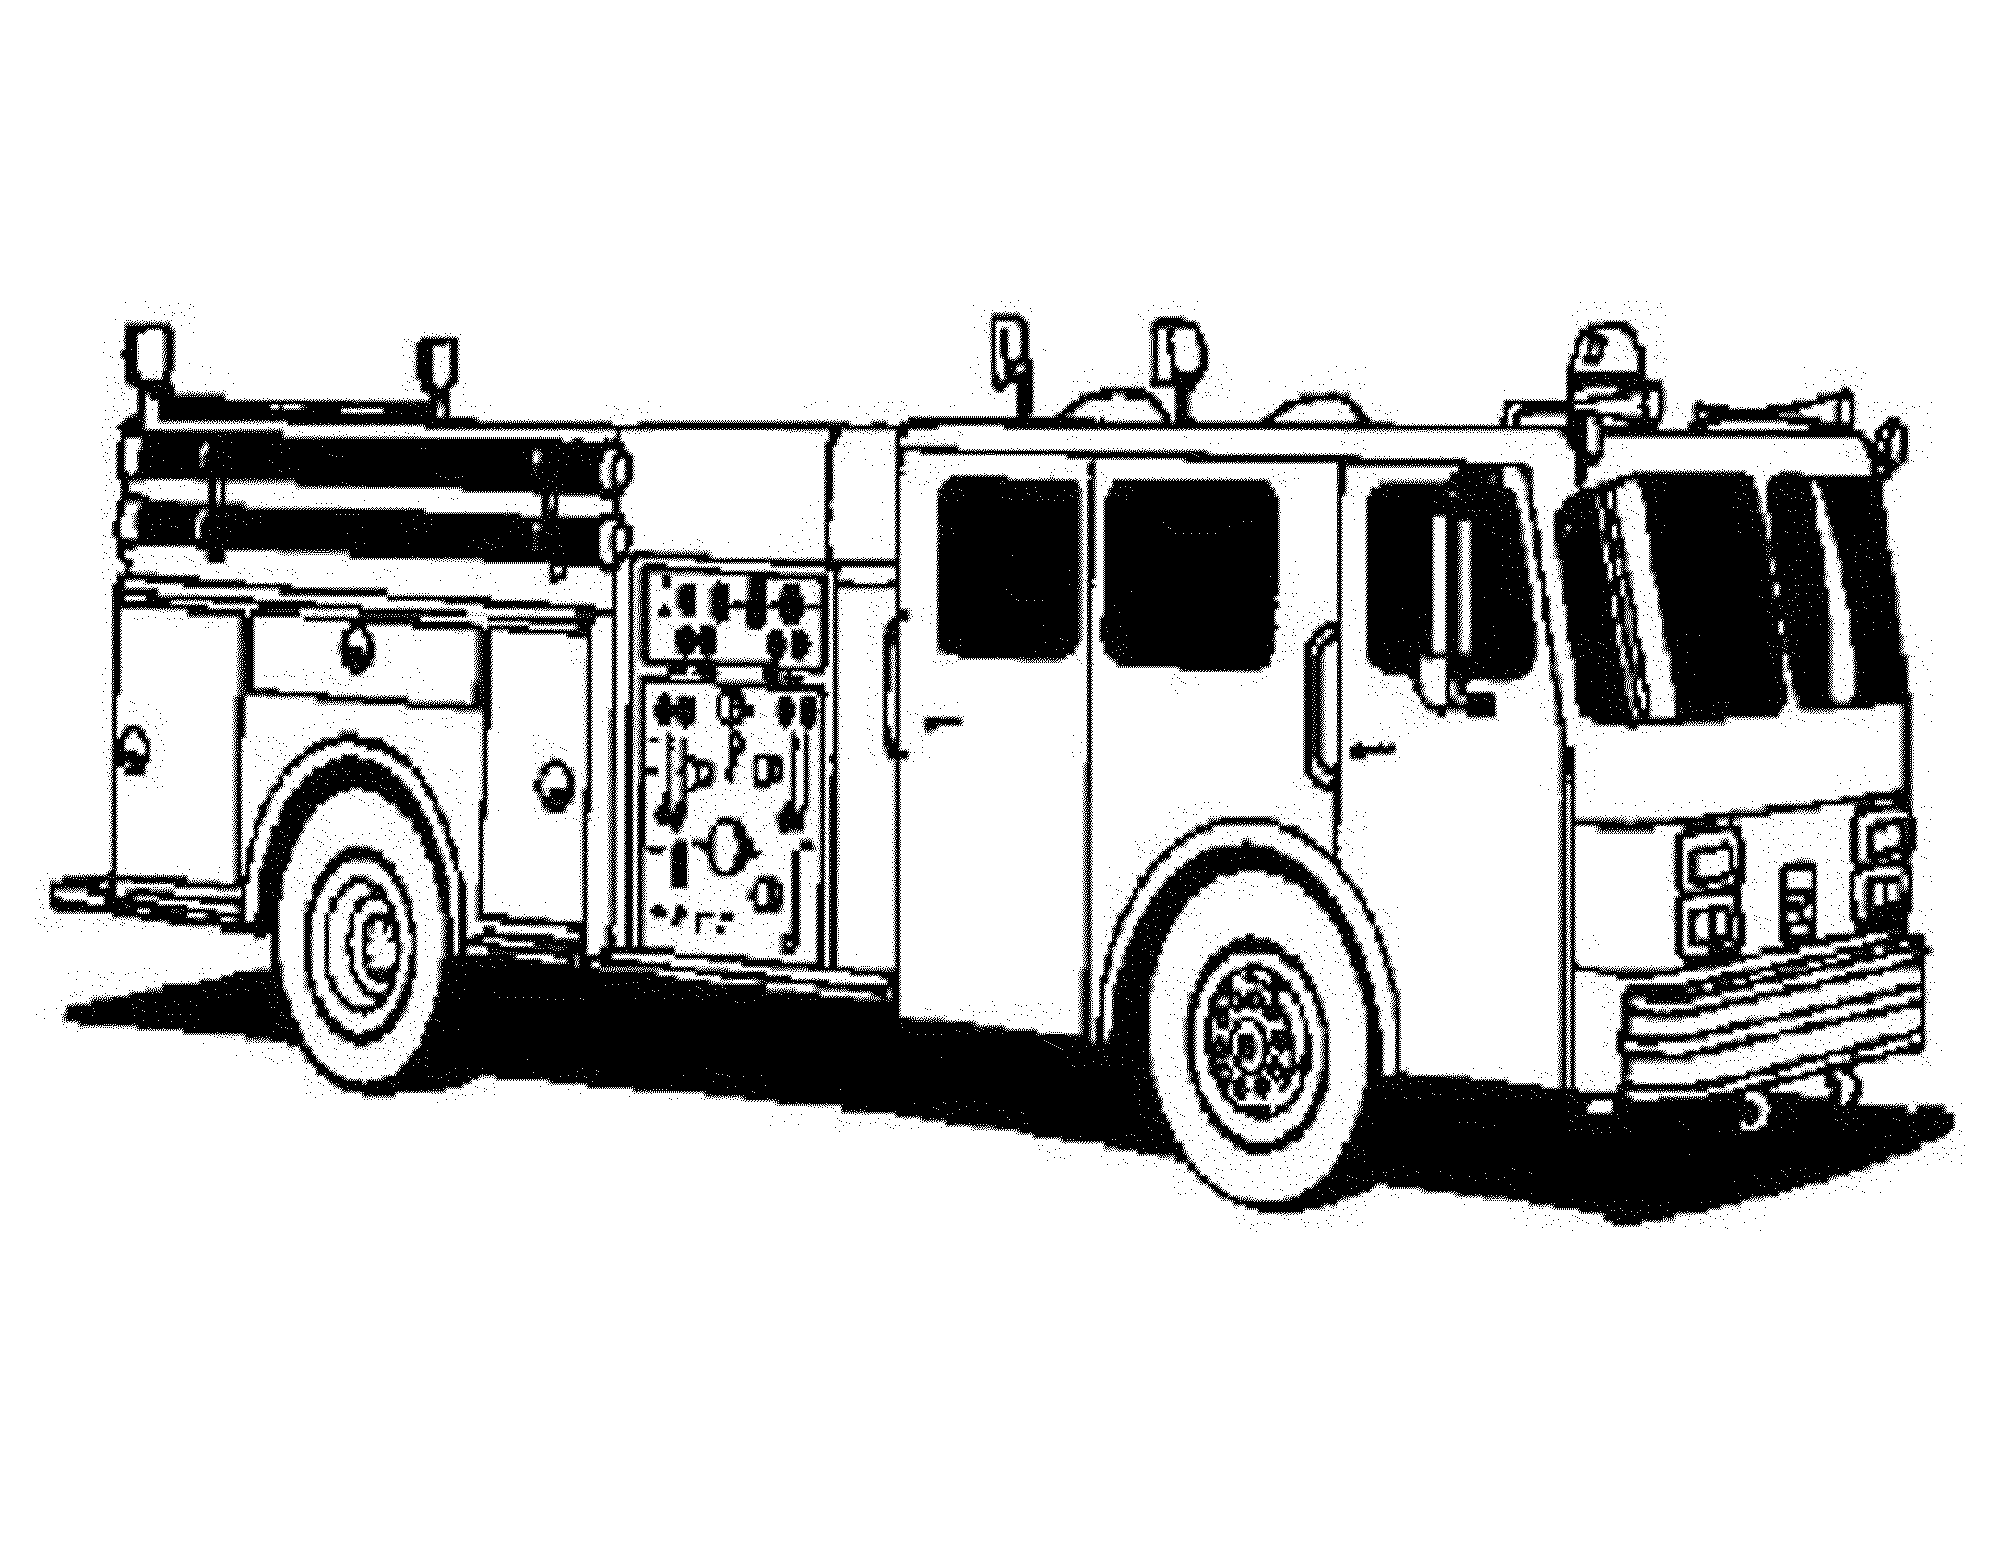 free fire truck coloring pages to print free printable fire truck coloring pages for kids coloring to print free truck pages fire